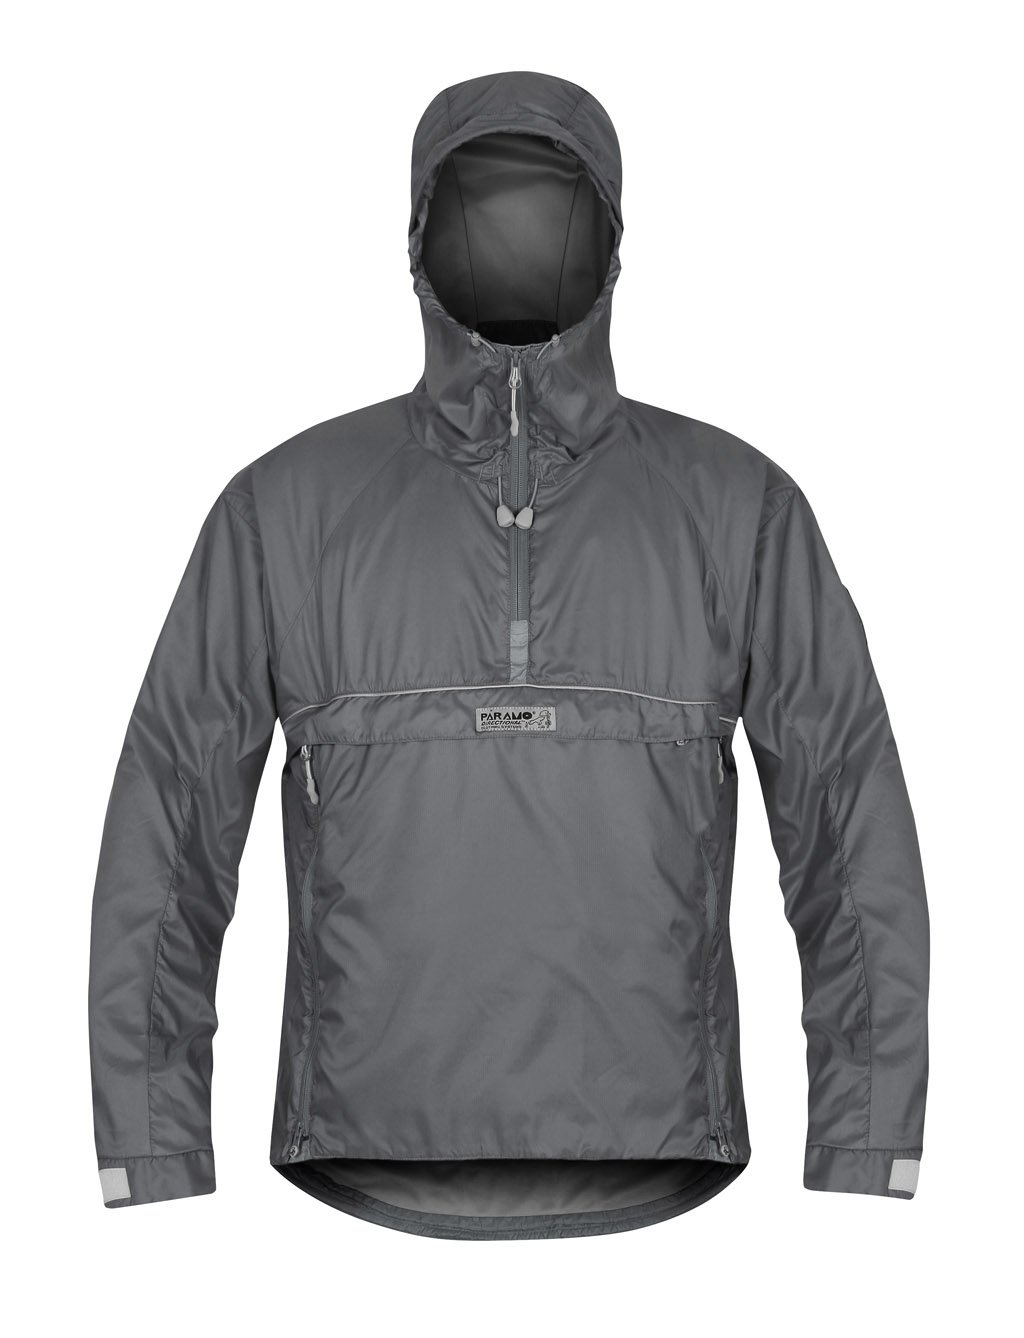 Paramo Directional Clothing Systems Velez Adventure Light Smock Chaqueta Impermeable, Hombre: Amazon.es: Deportes y aire libre